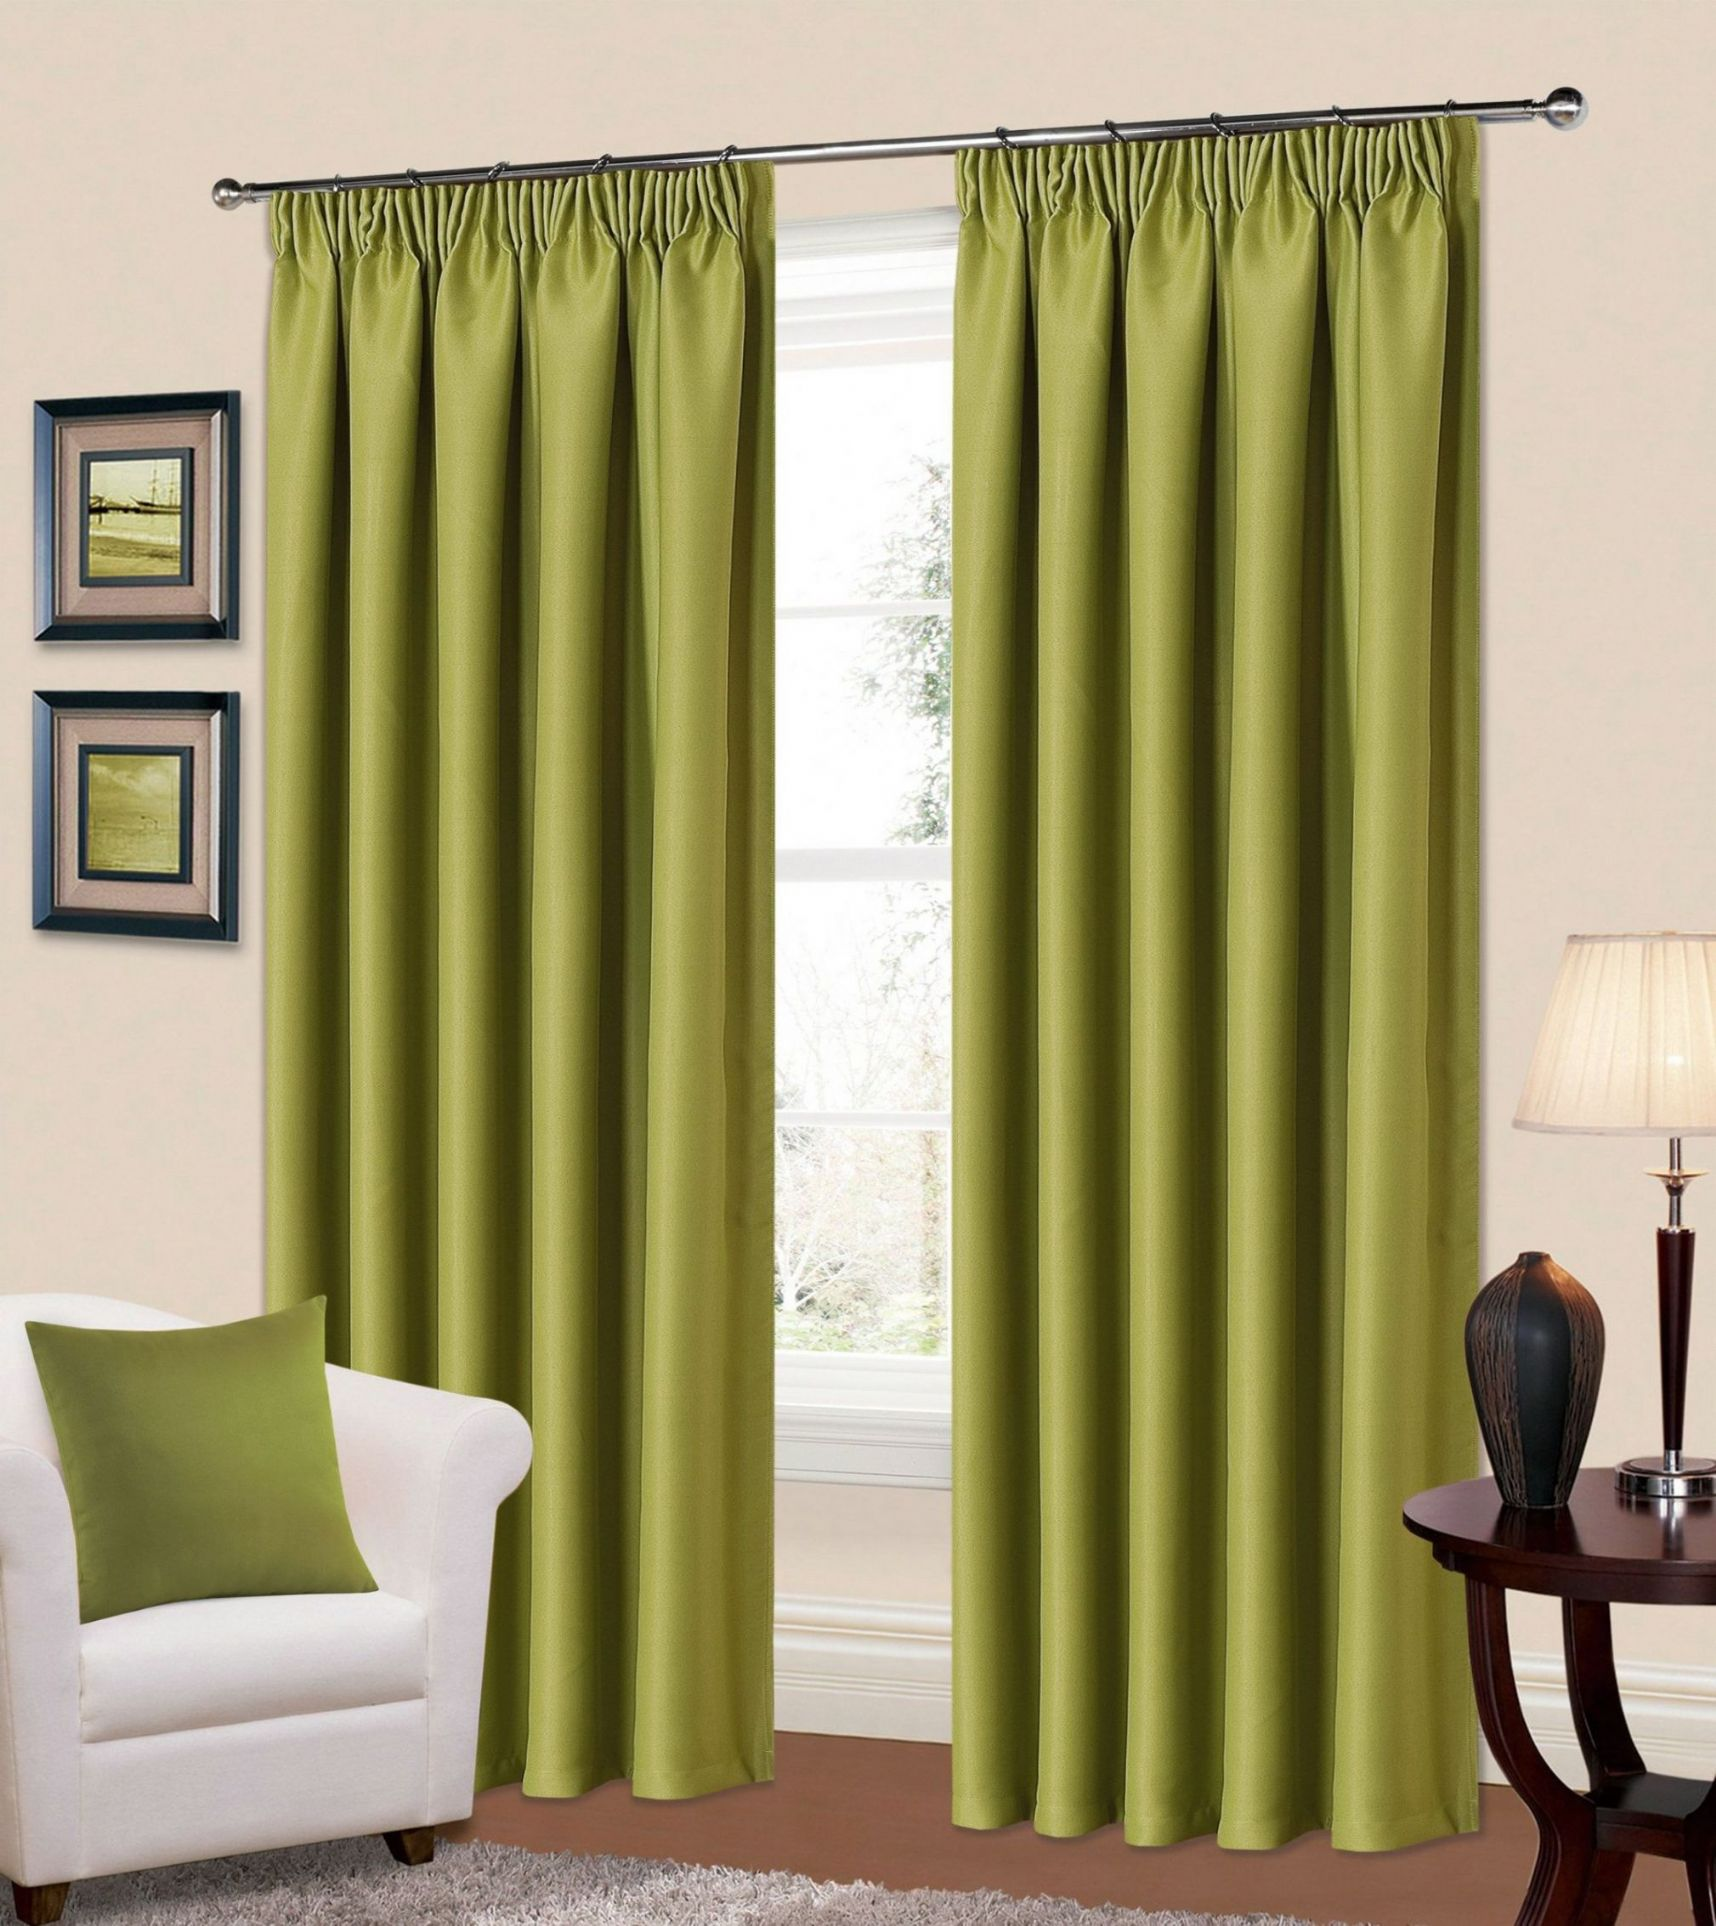 Ready Made Thermal Curtains Plain Green Colour Thermal Blackout Readymade Bedroom Livingroom